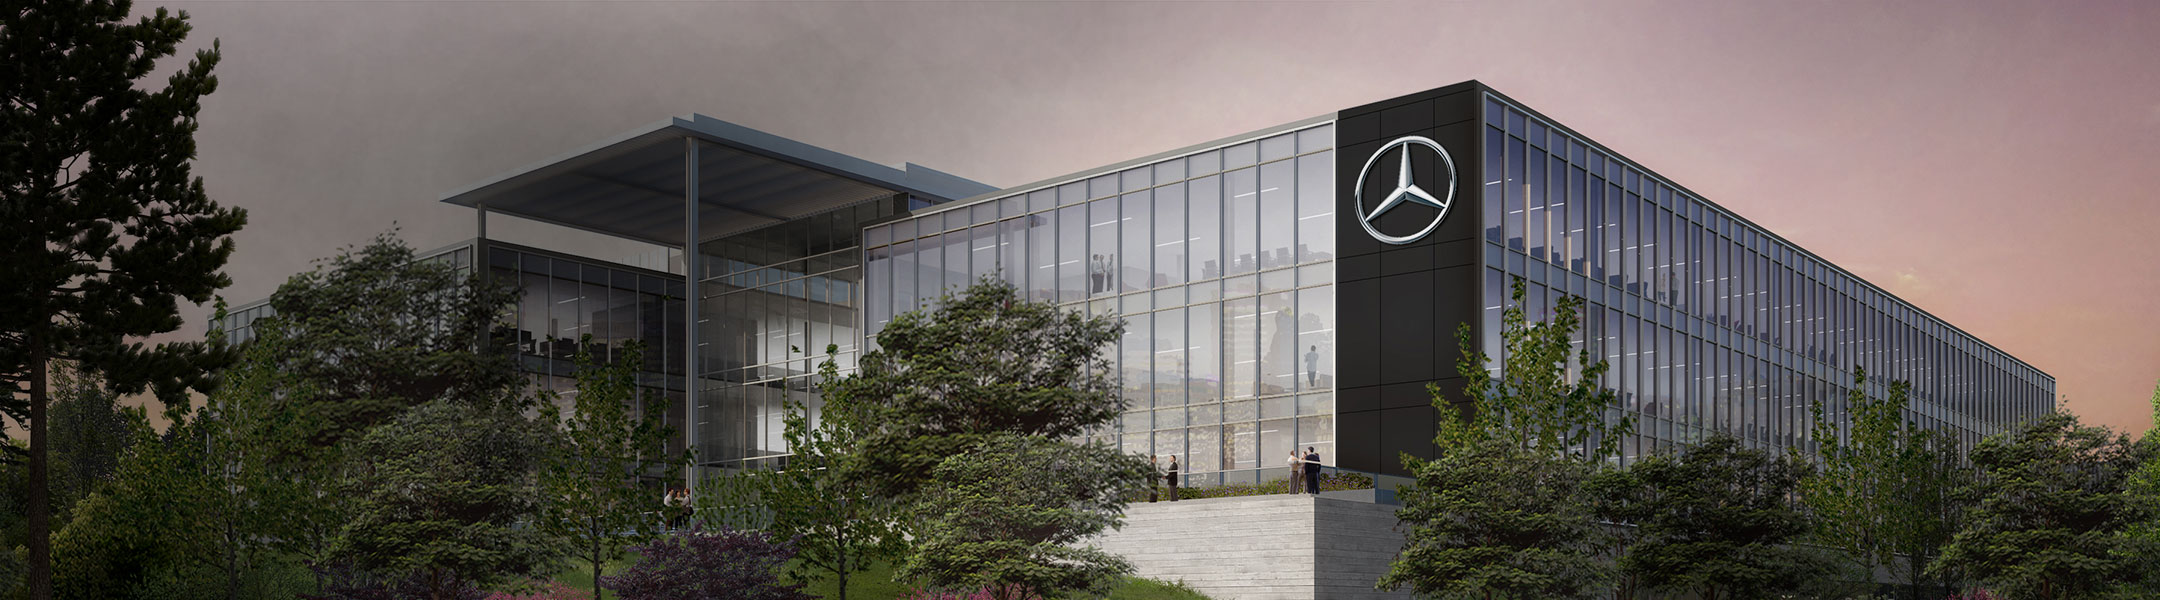 Mercedes Benz Usa Montvale Nj Careers